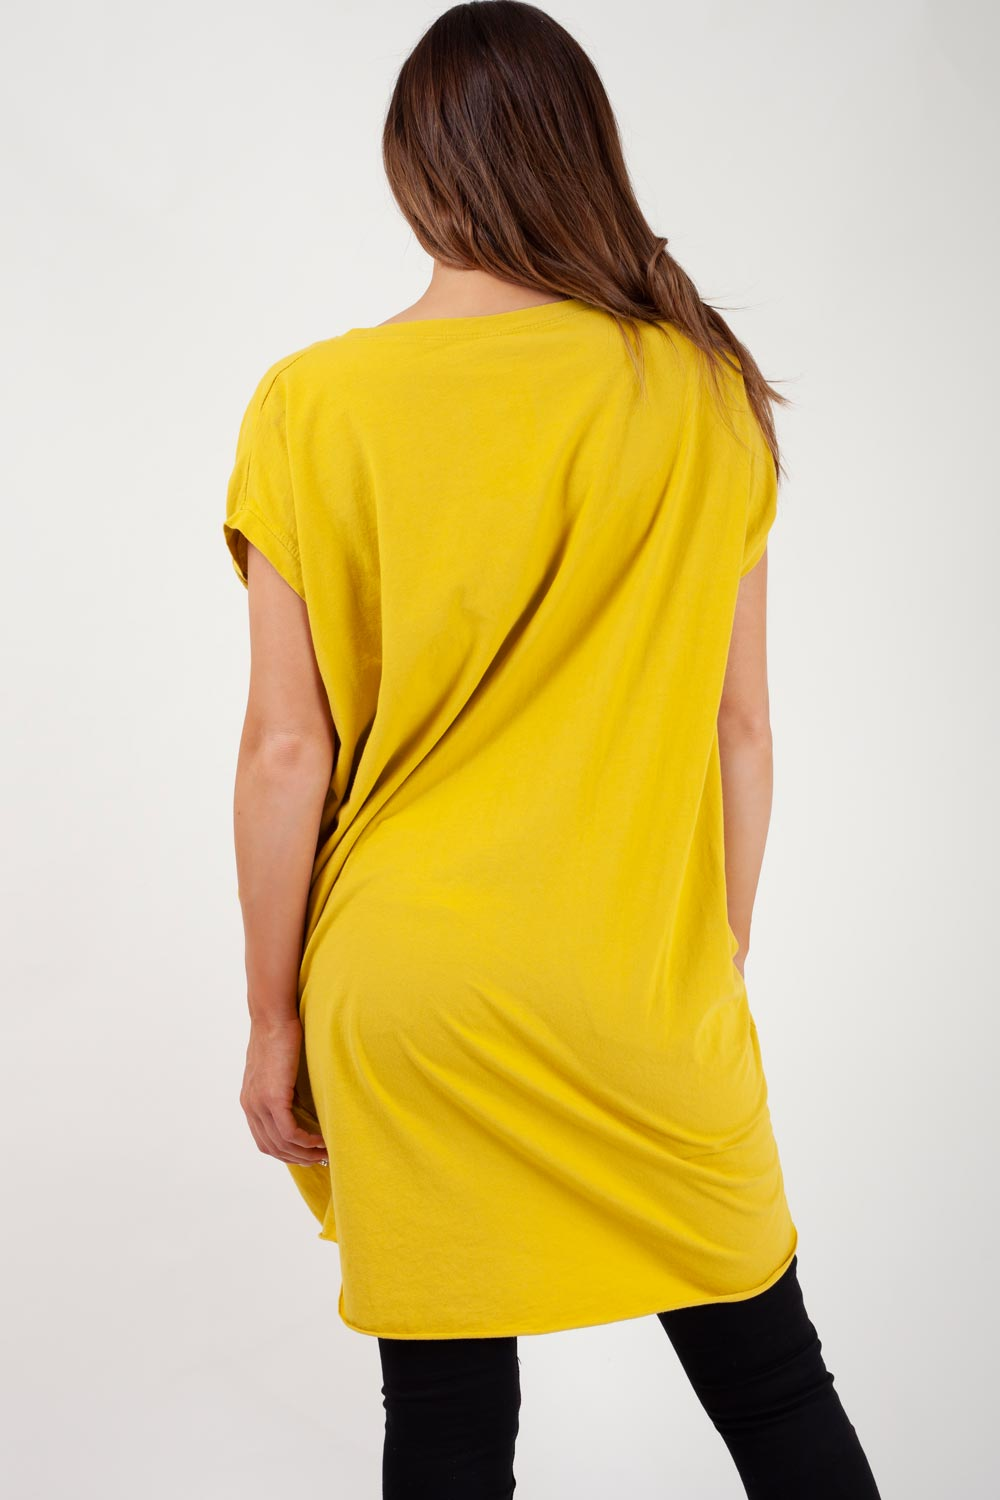 mustard oversized t shirt womens